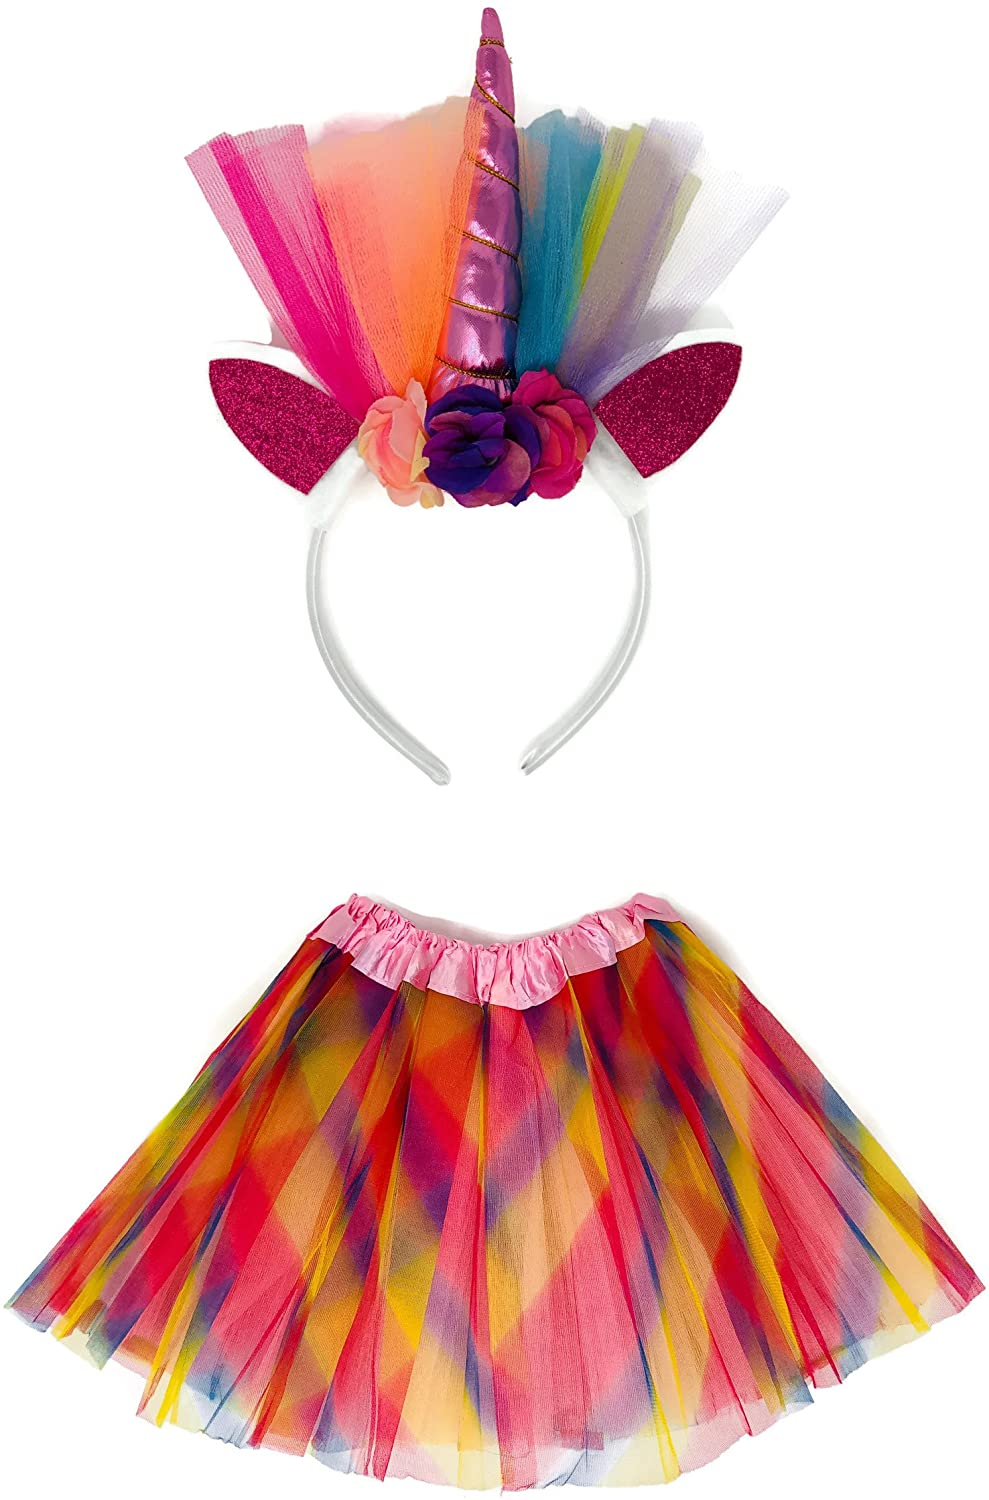 Rush Dance Tutu Skirt, Ears, Tail Headband Halloween School Performance Costume (Kid Size (2-8 Years Old), Rainbow Unicorn)